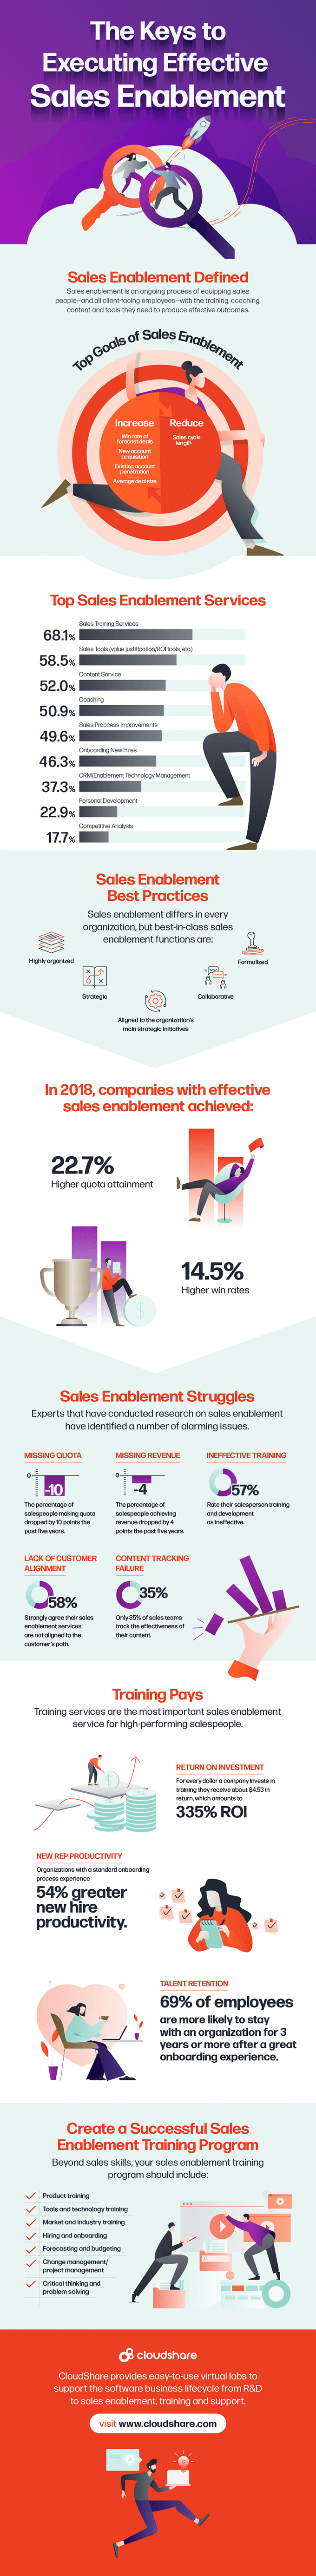 the keys to executing effective sales enablement